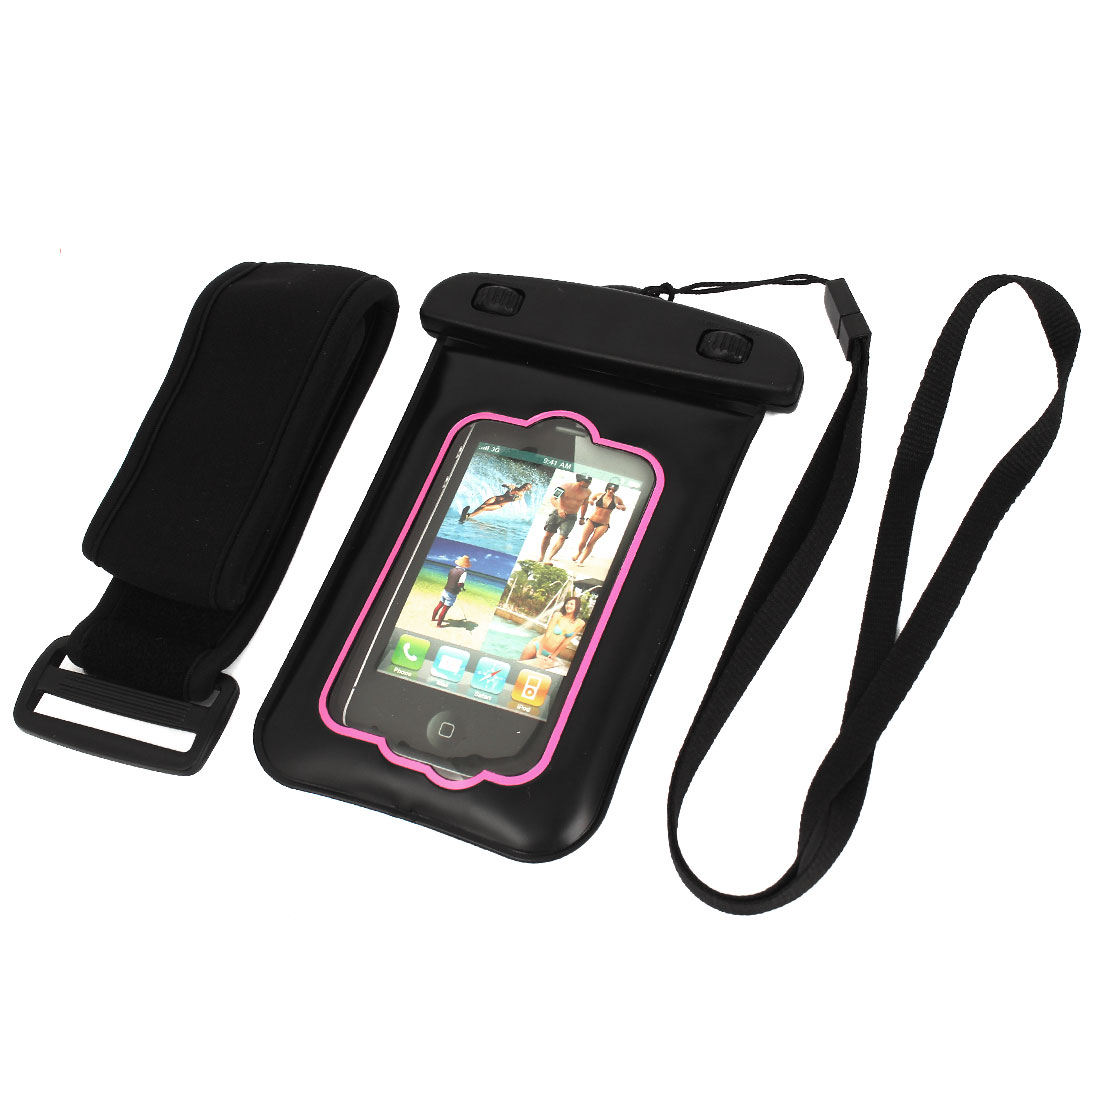 "Waterproof Case Dry Bag Skin Cover Pouch Protector for 3.5"" Mobile Phone"